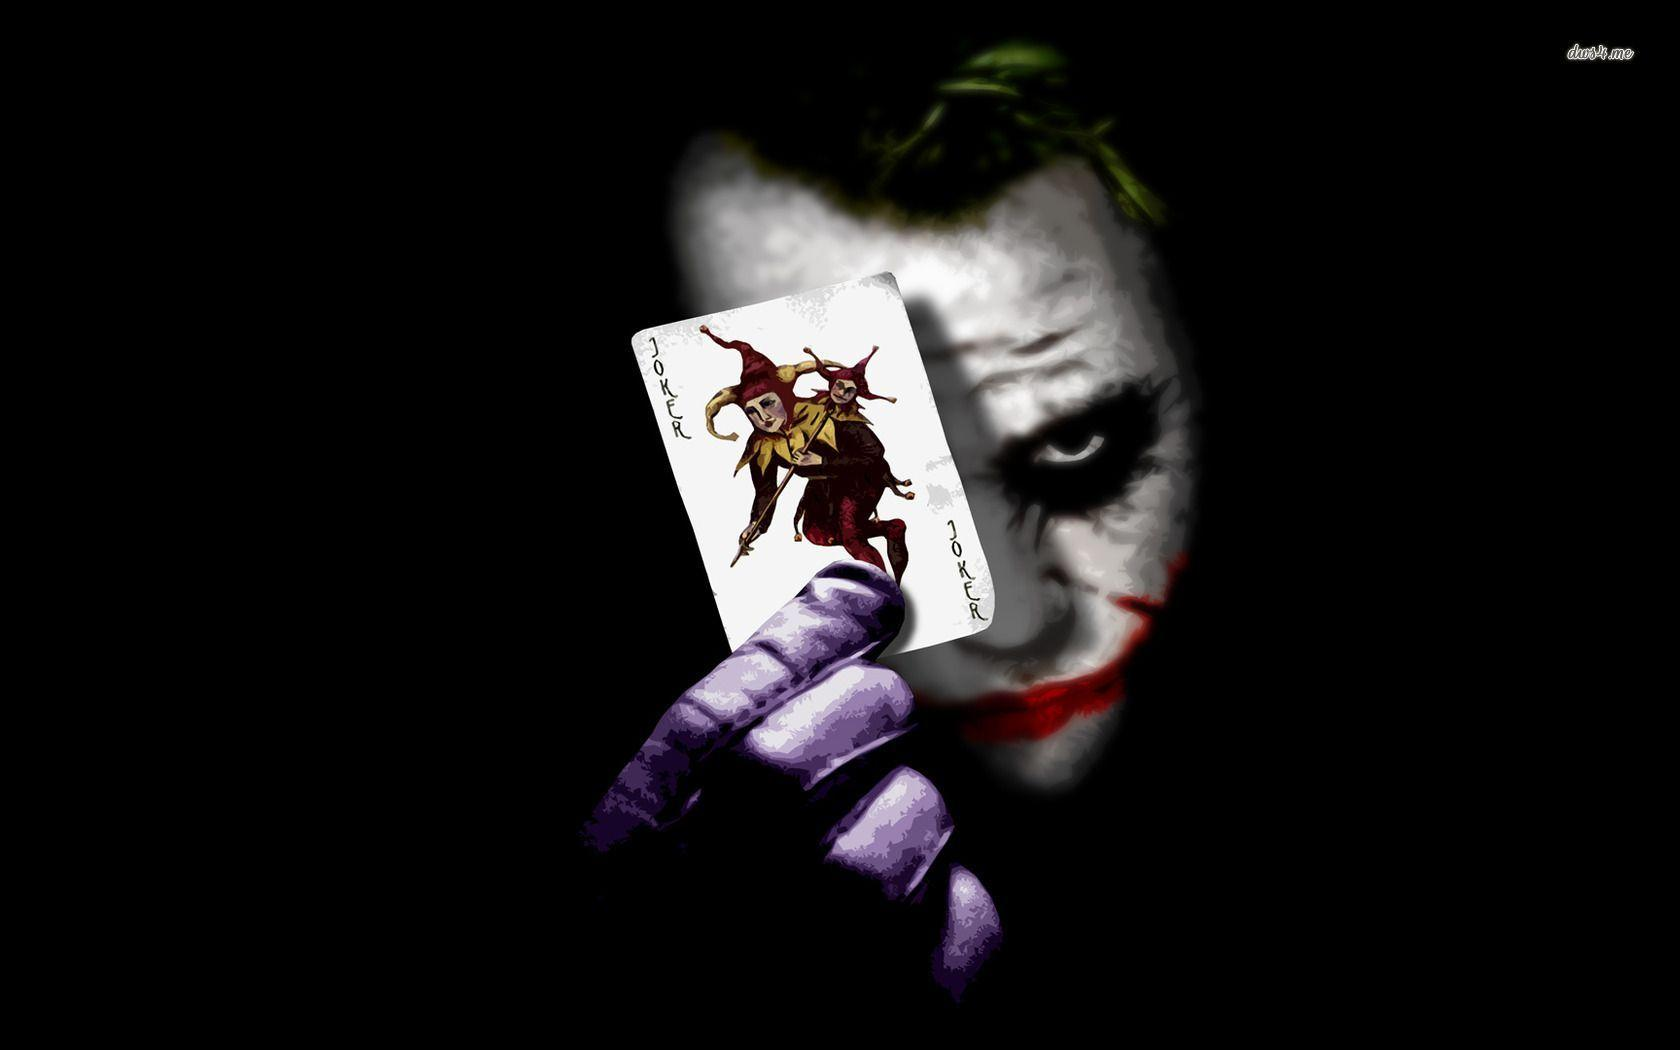 Joker the dark knight wallpaper movie wallpapers